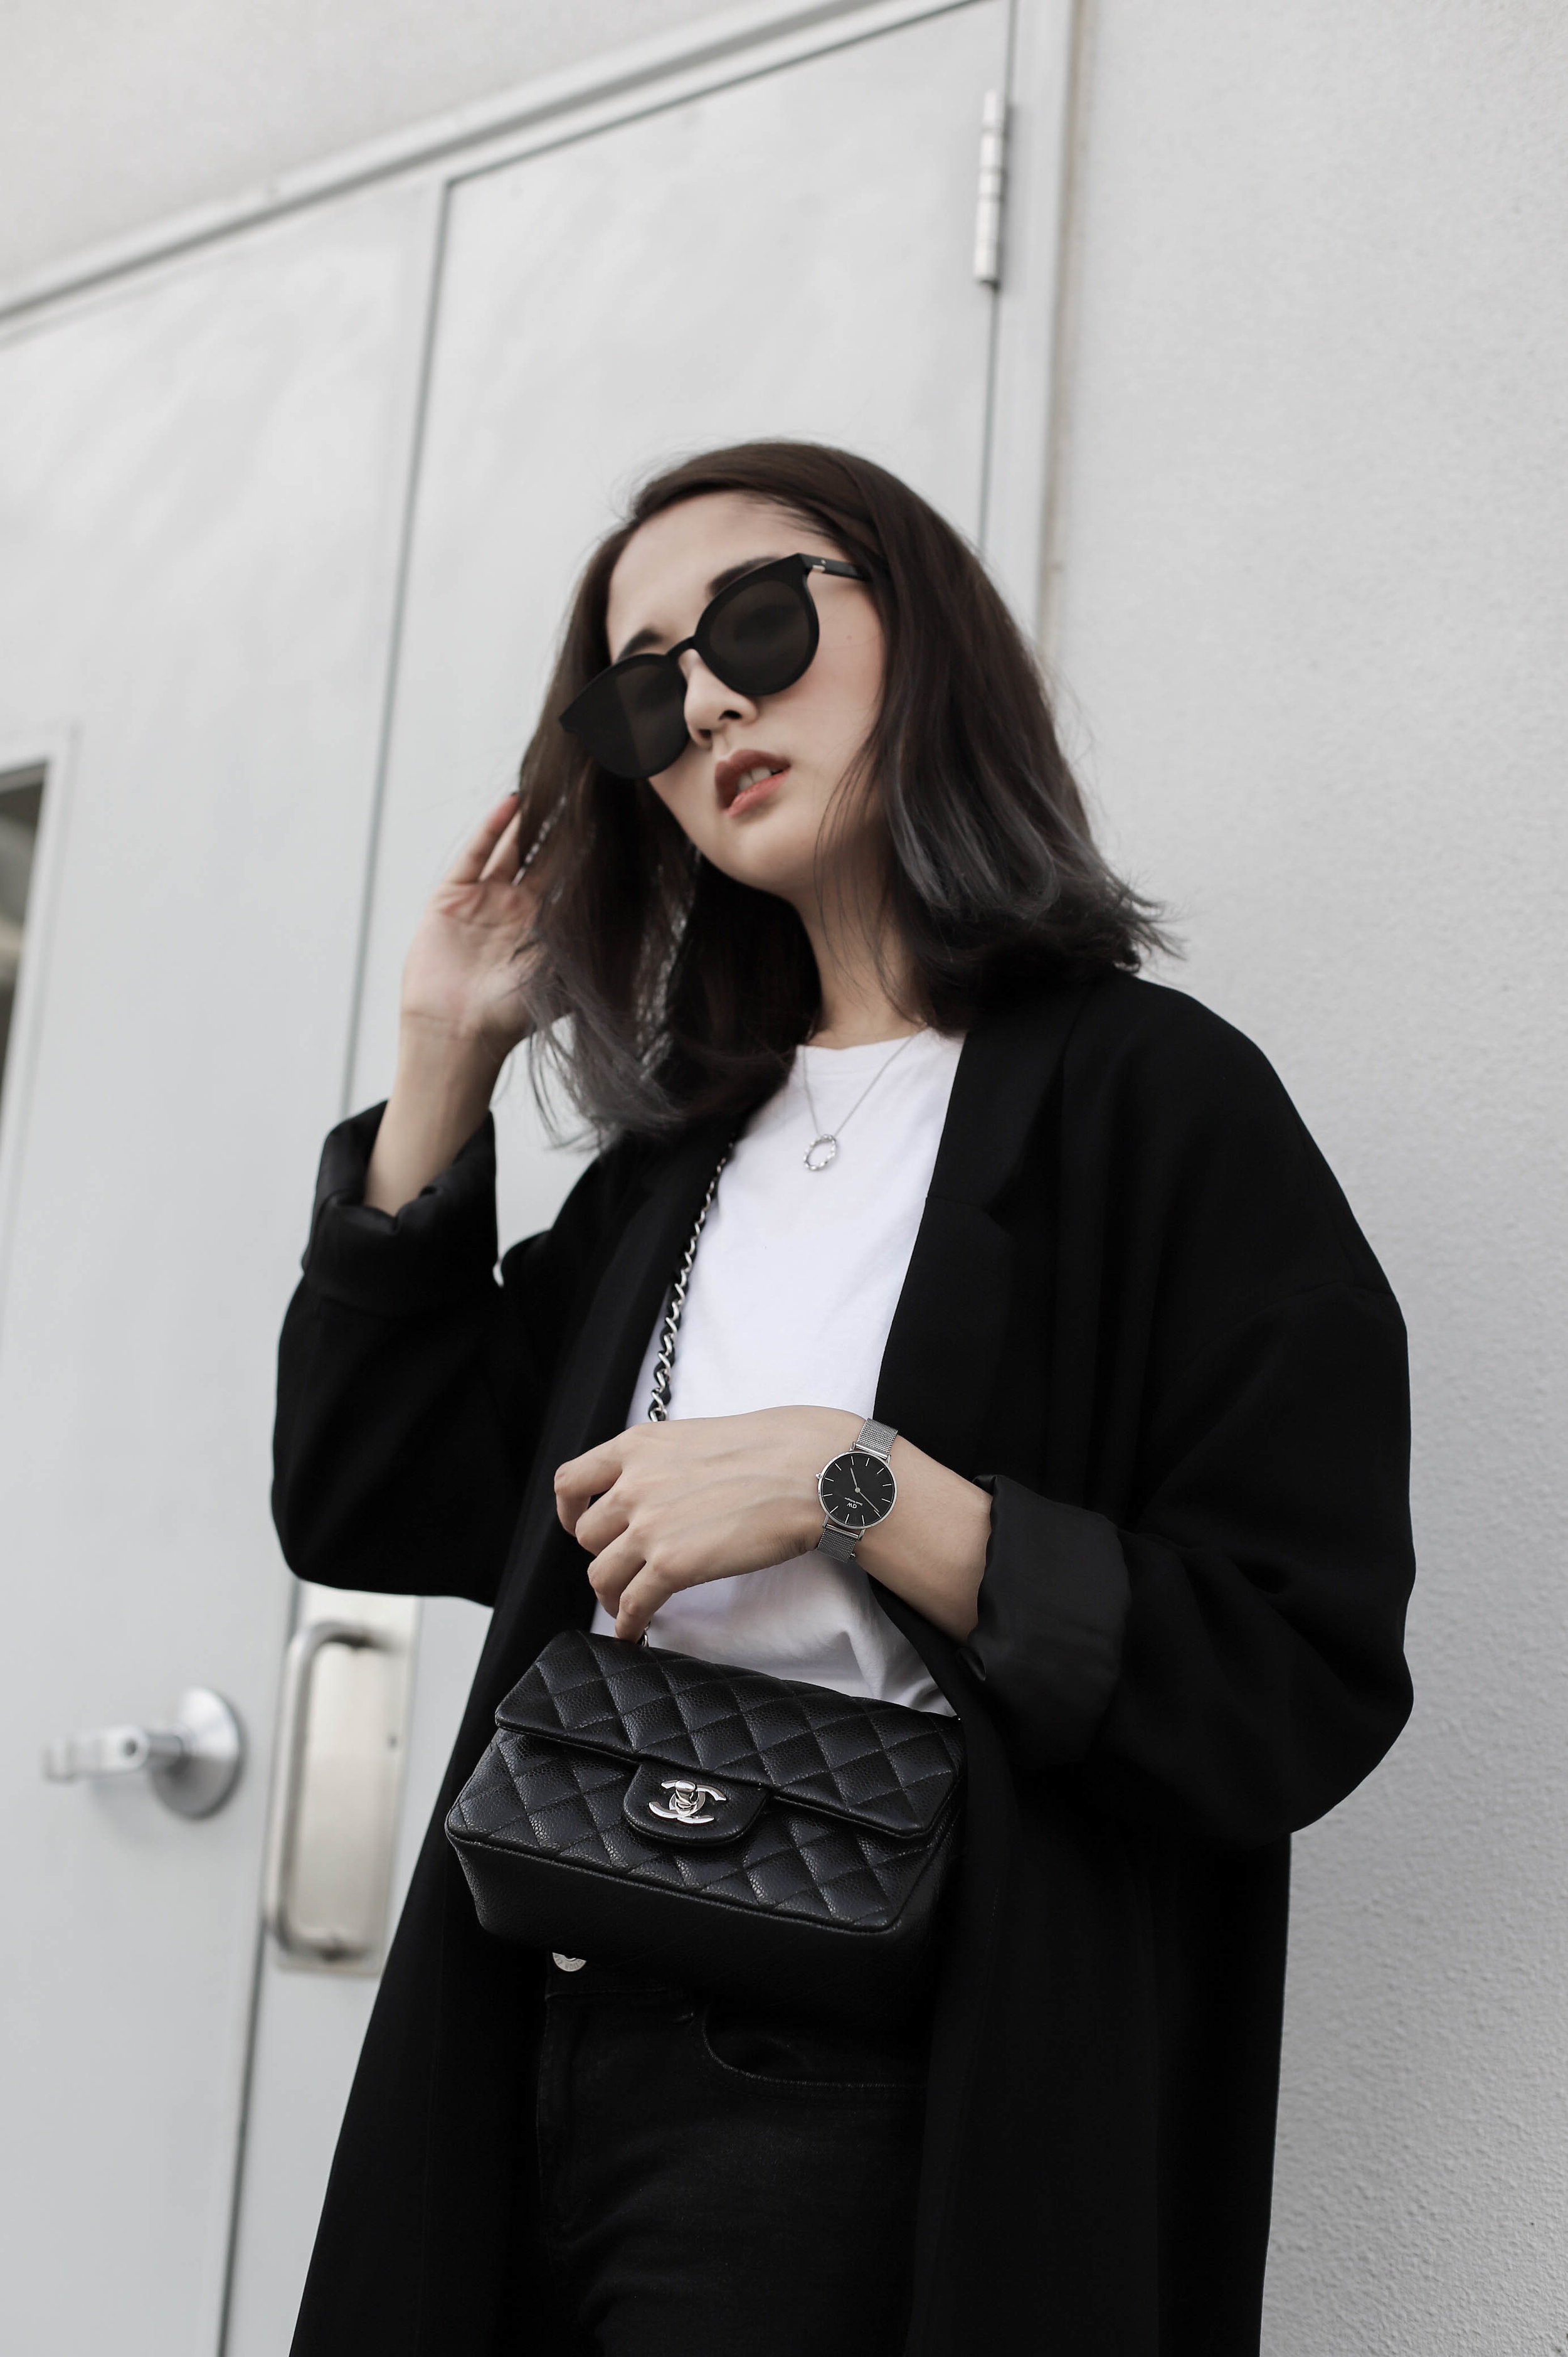 Julia Doan fashion Blogger Vietnam-6.jpg